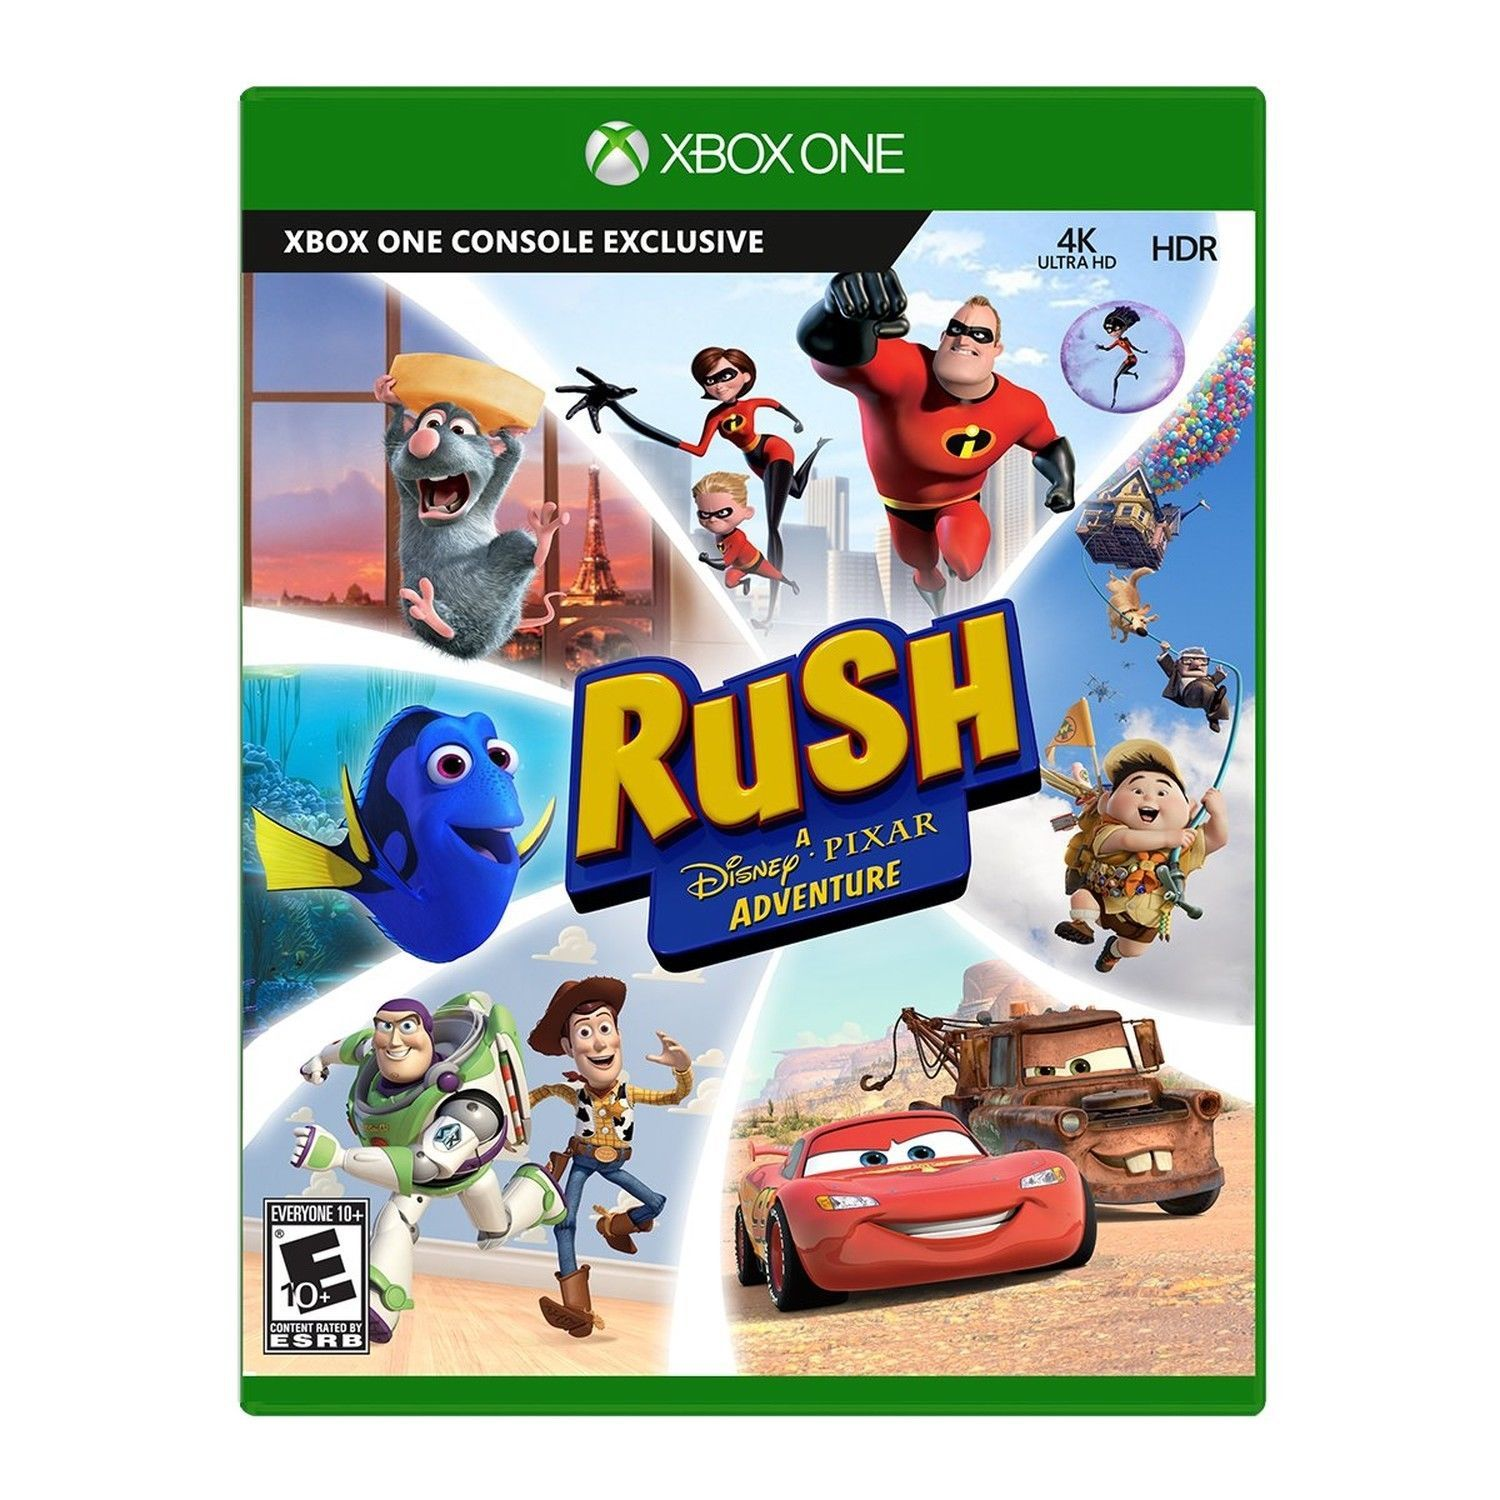 Pin by Samantha on Disney Pixar Games (With images) Xbox